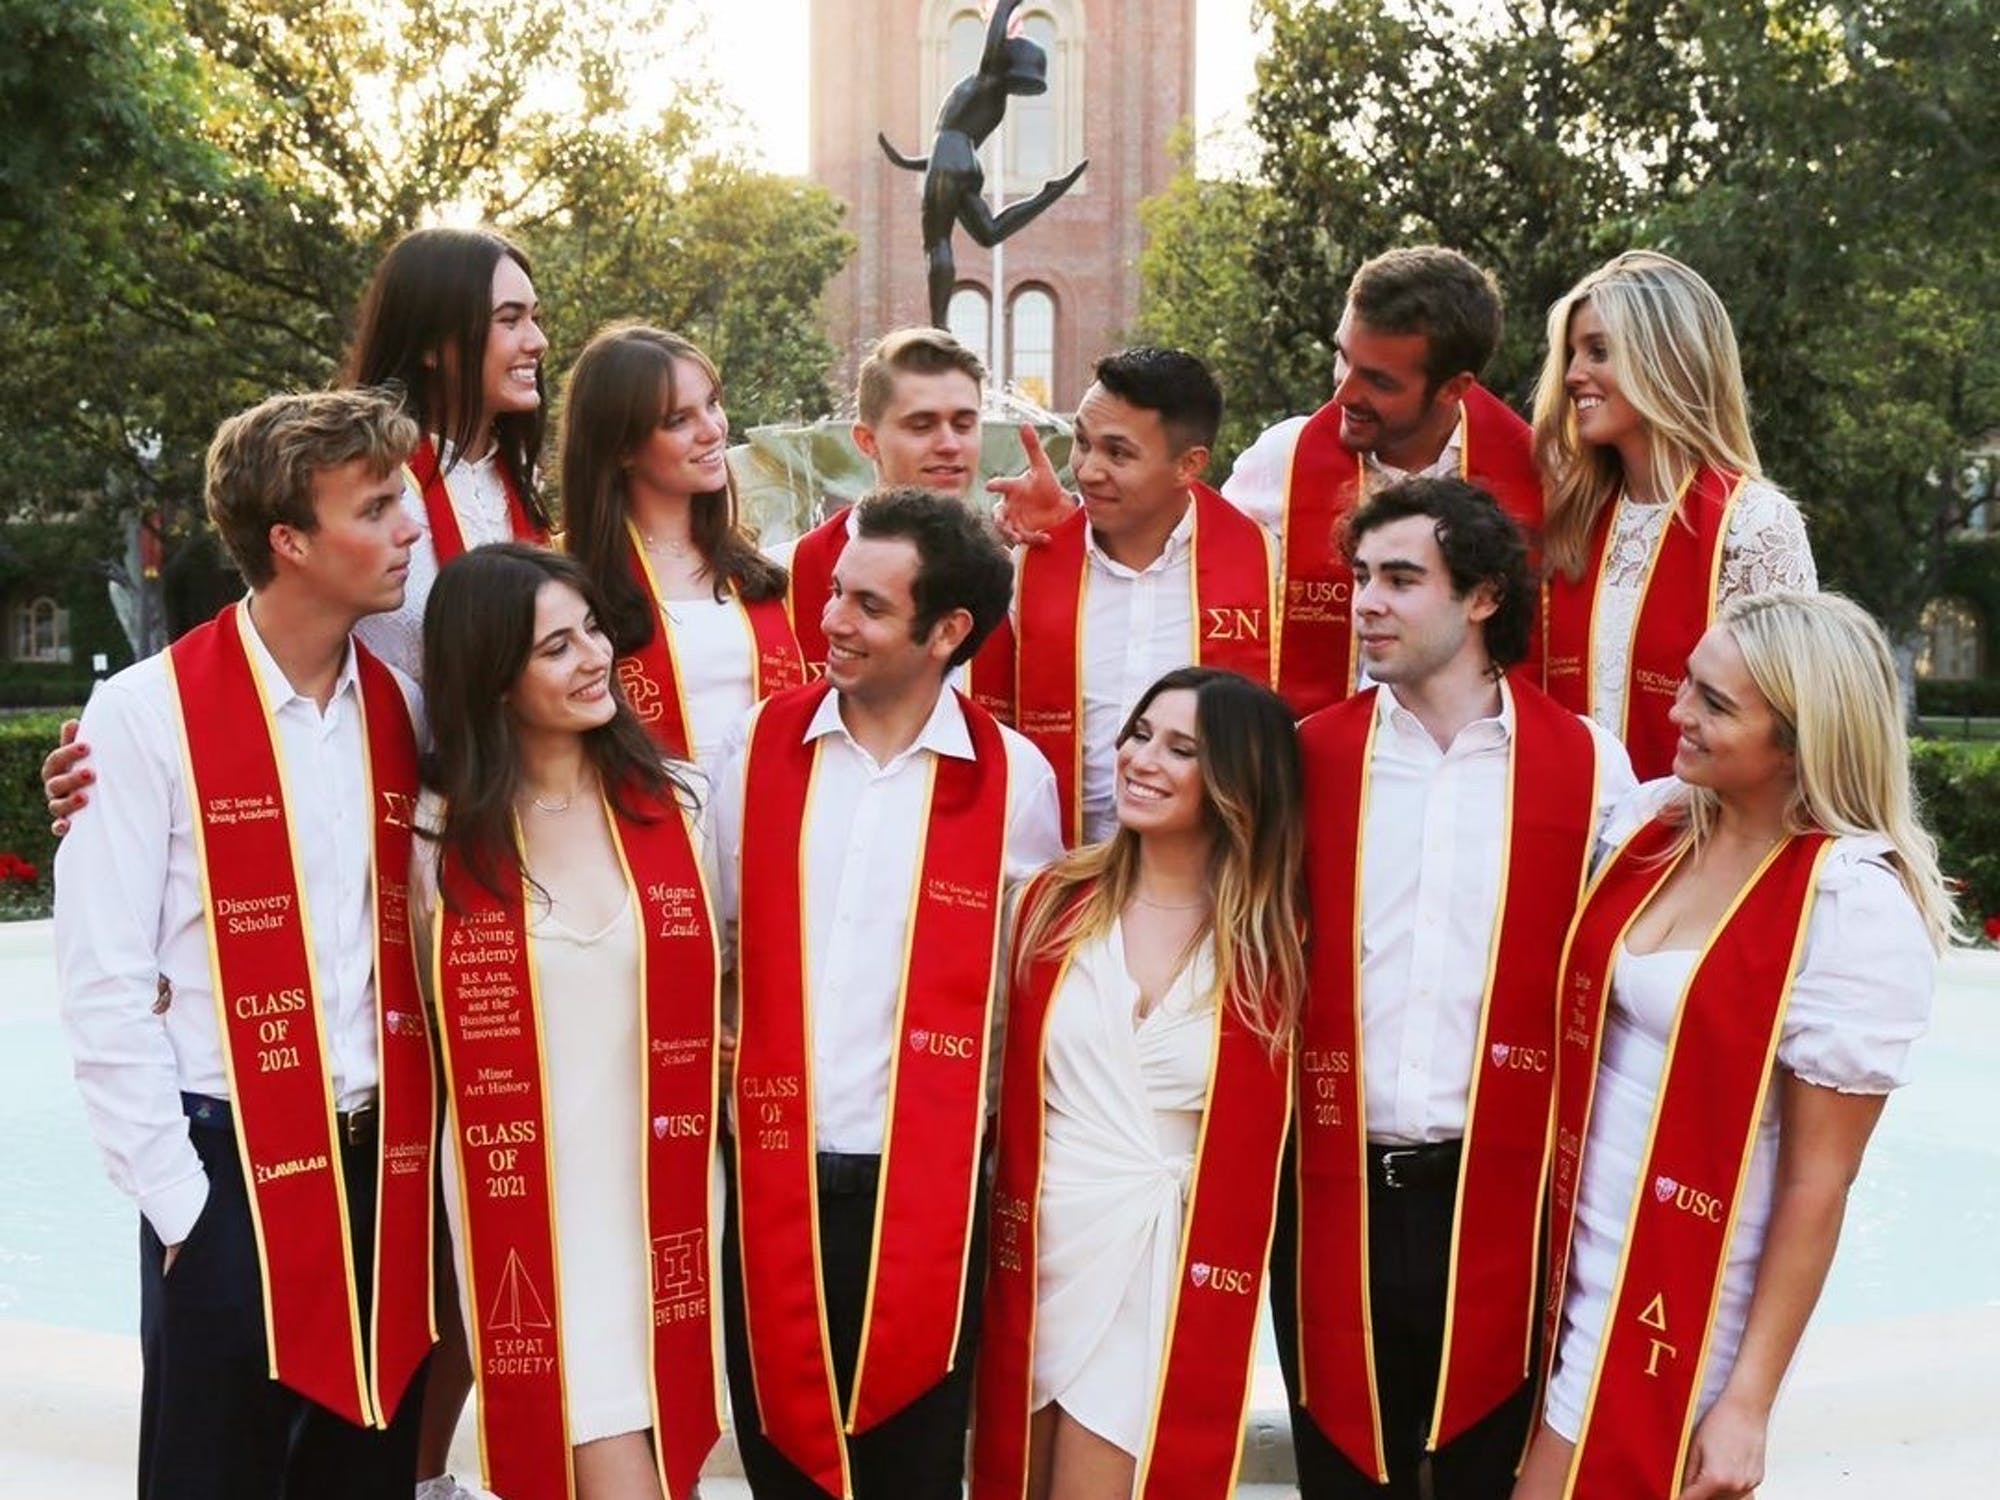 Group of graduating students wearing white and red sashes